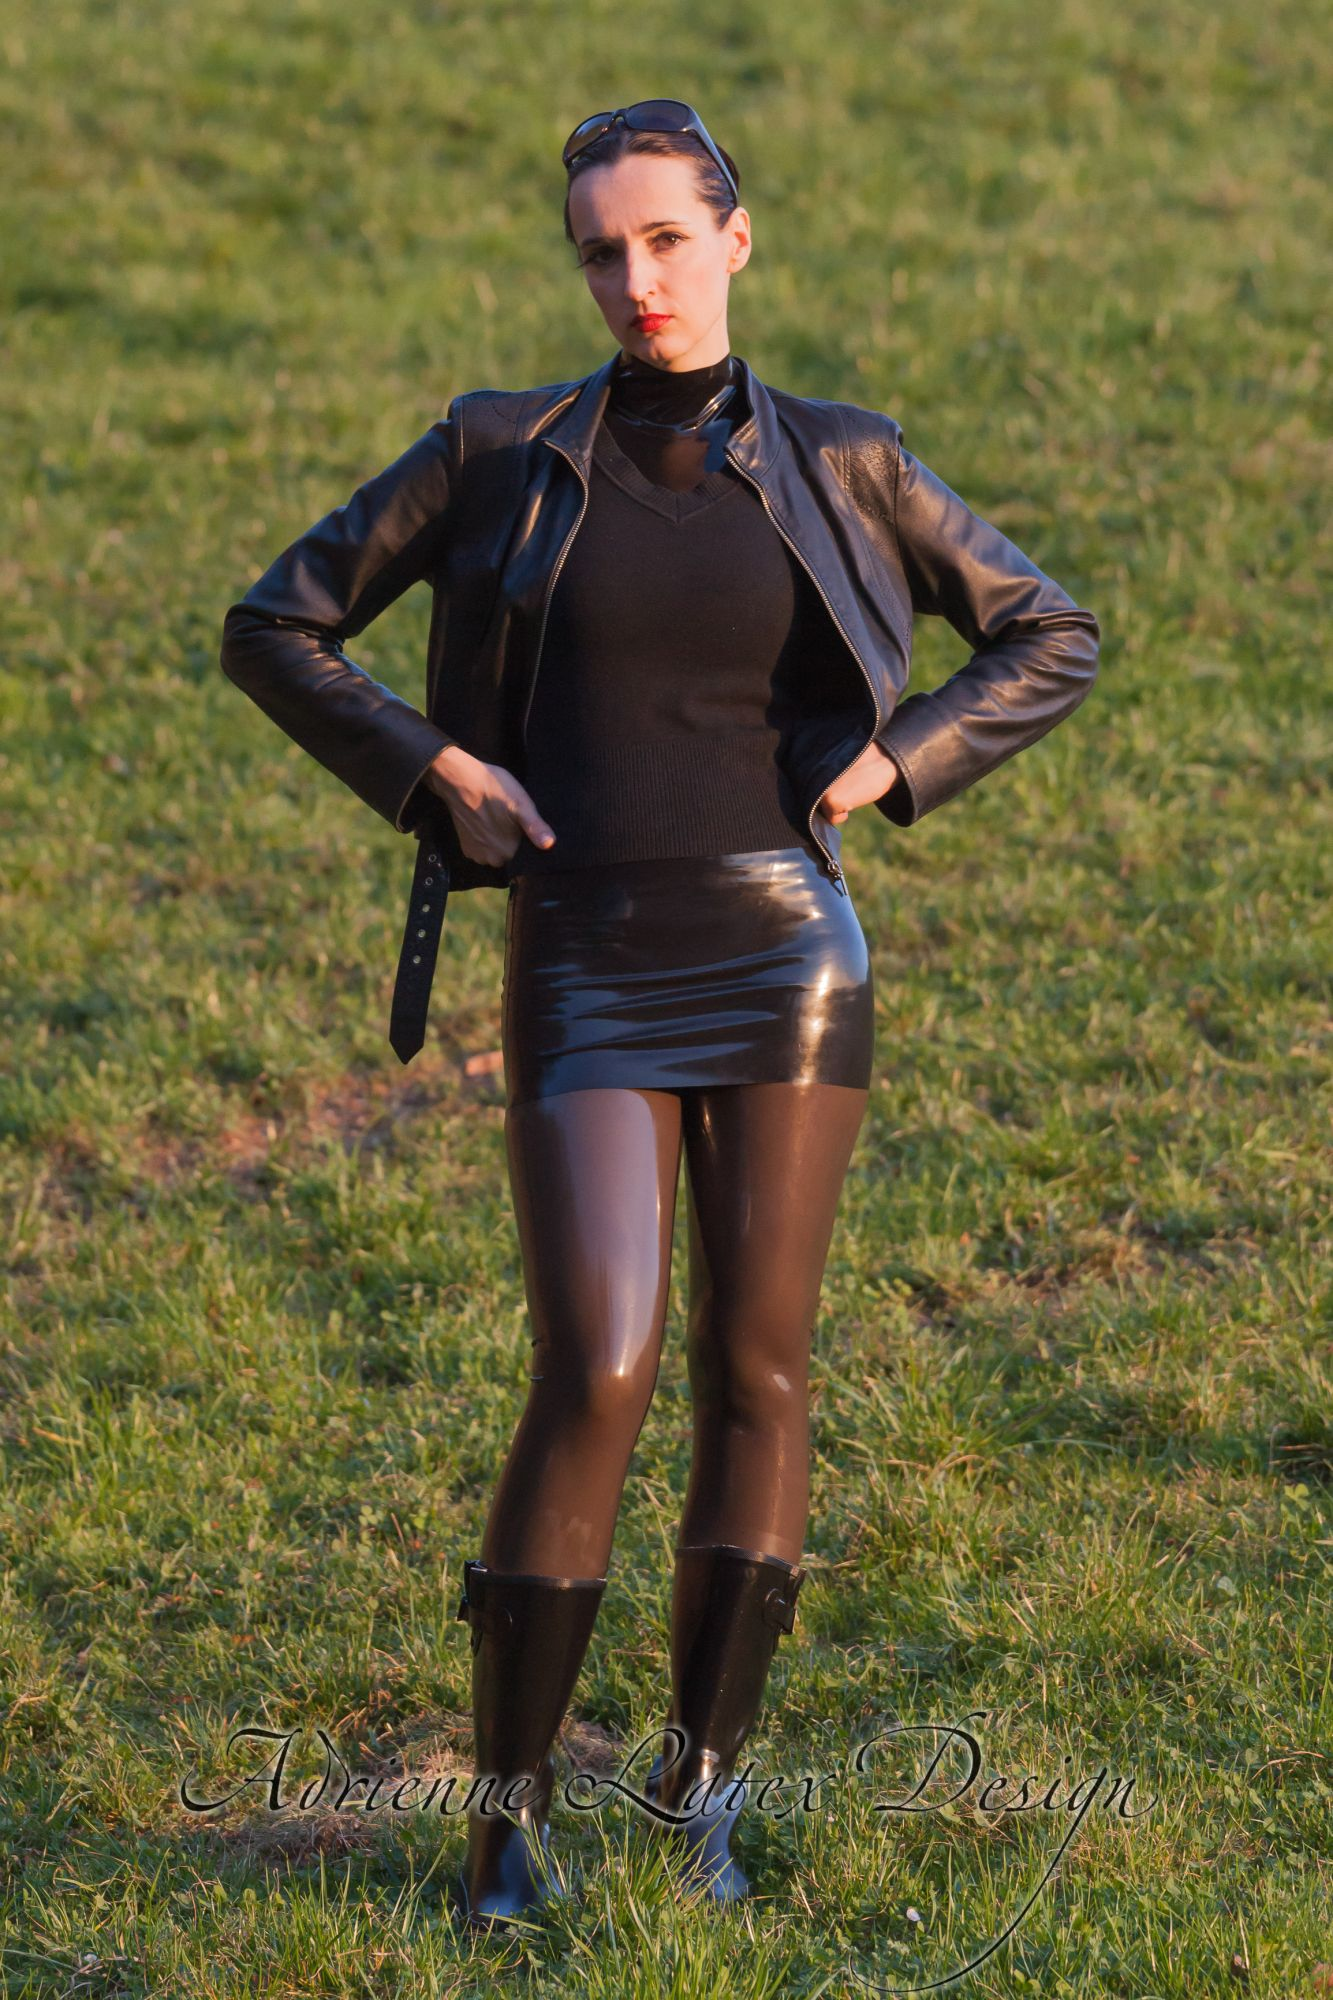 Gal-2 | Adrienne Latex...